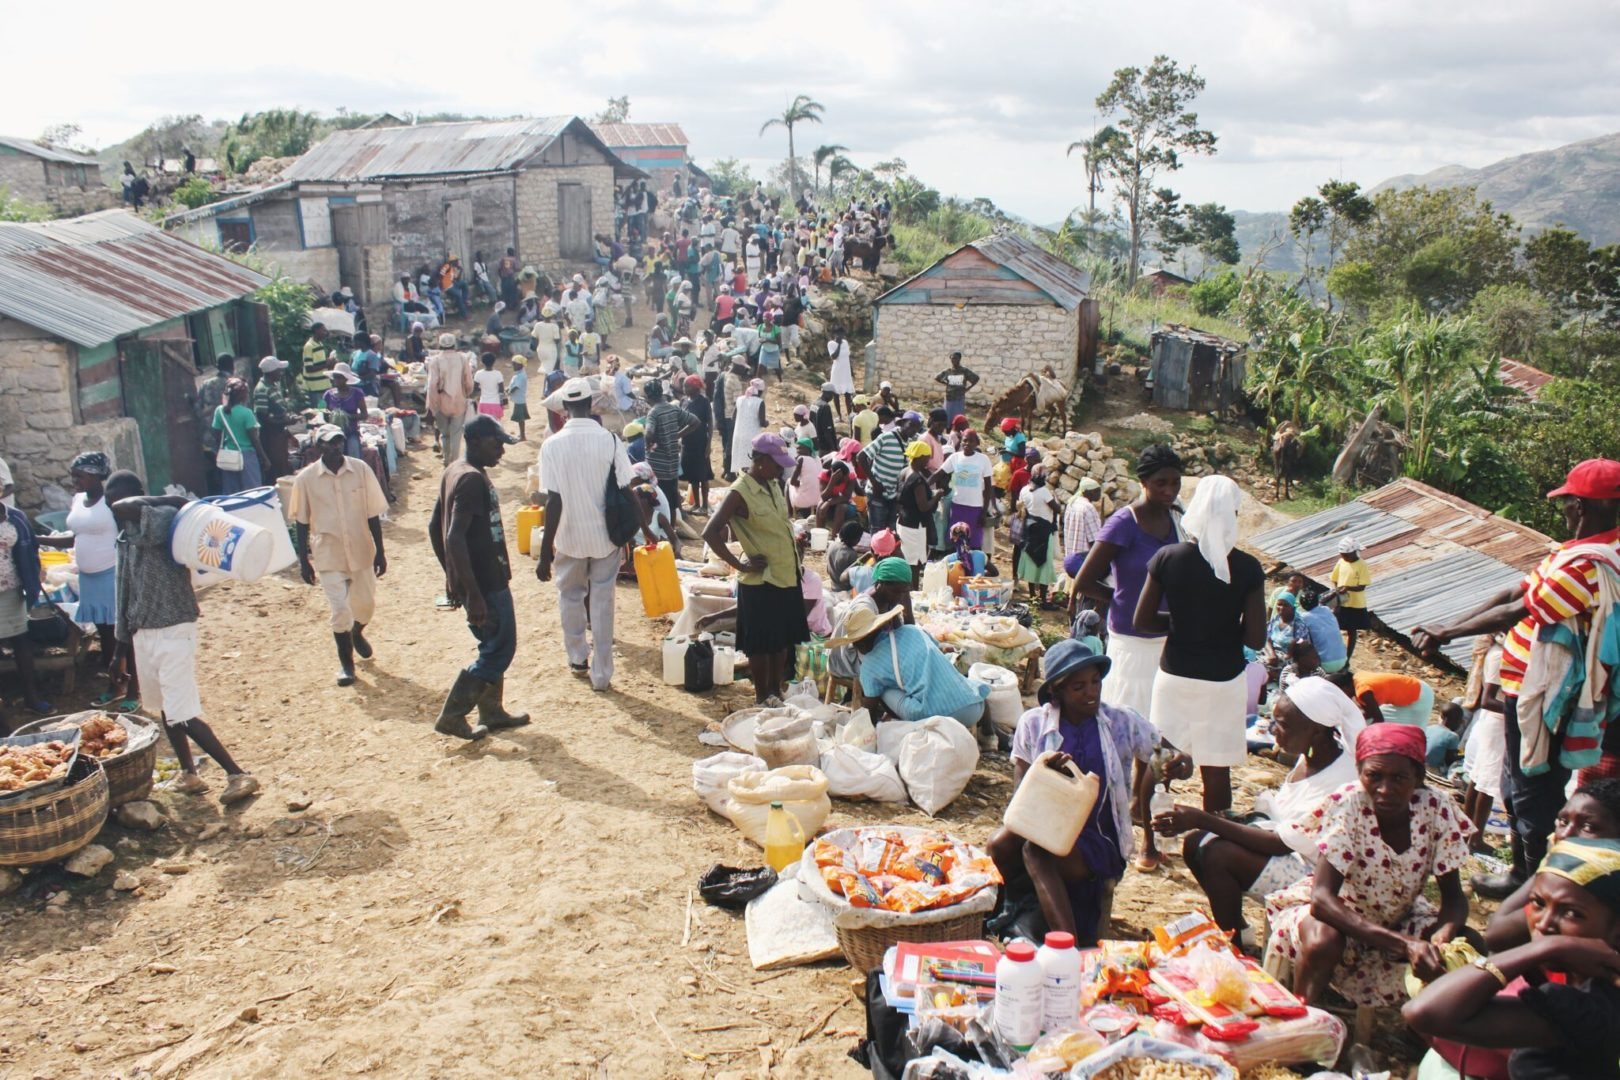 A marketplace in the Haitian border area